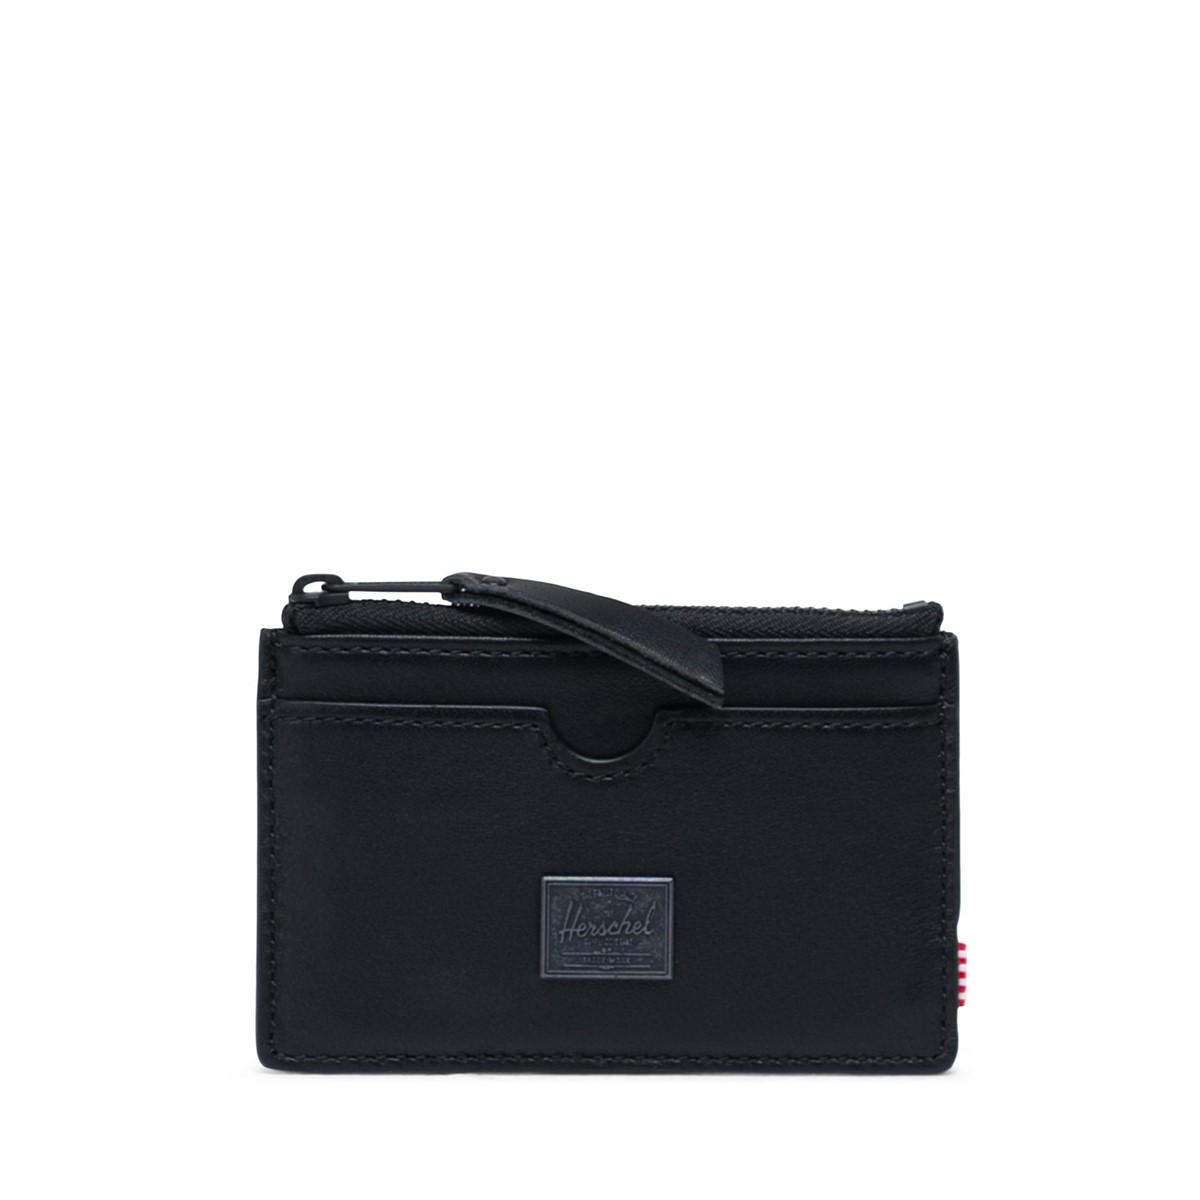 Oscar Wallet in Black